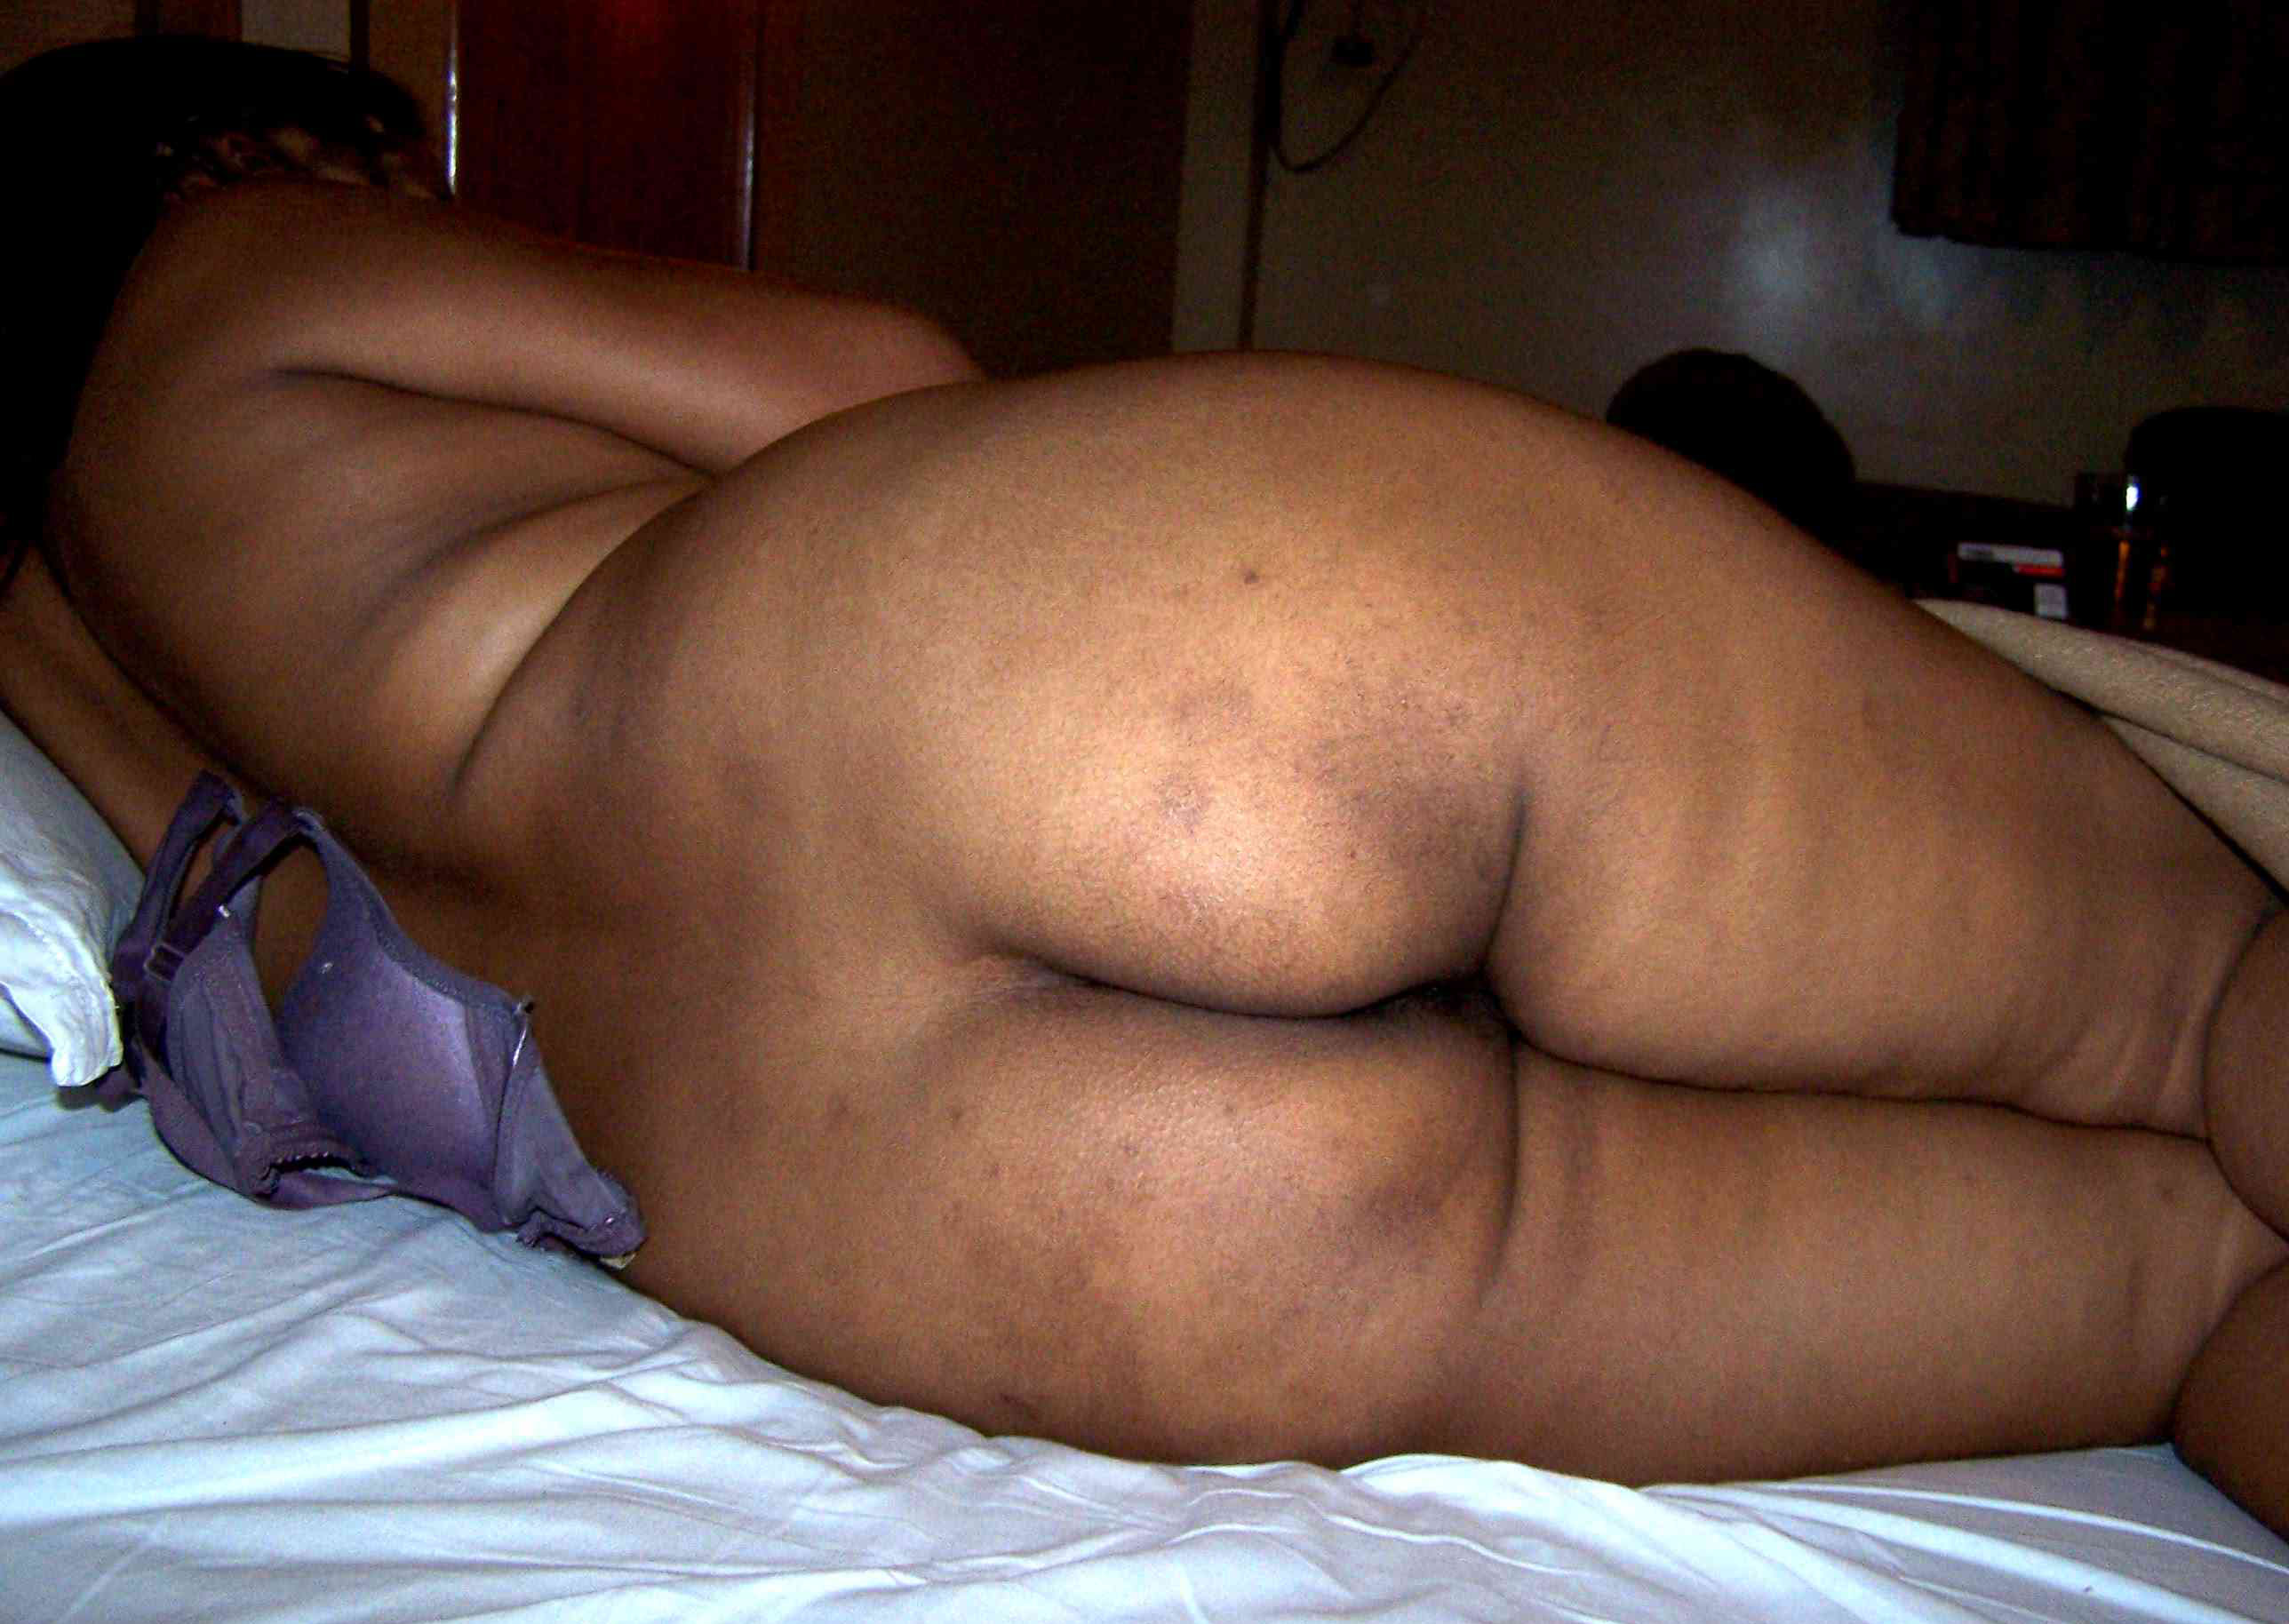 Big ass exposed full nude porn